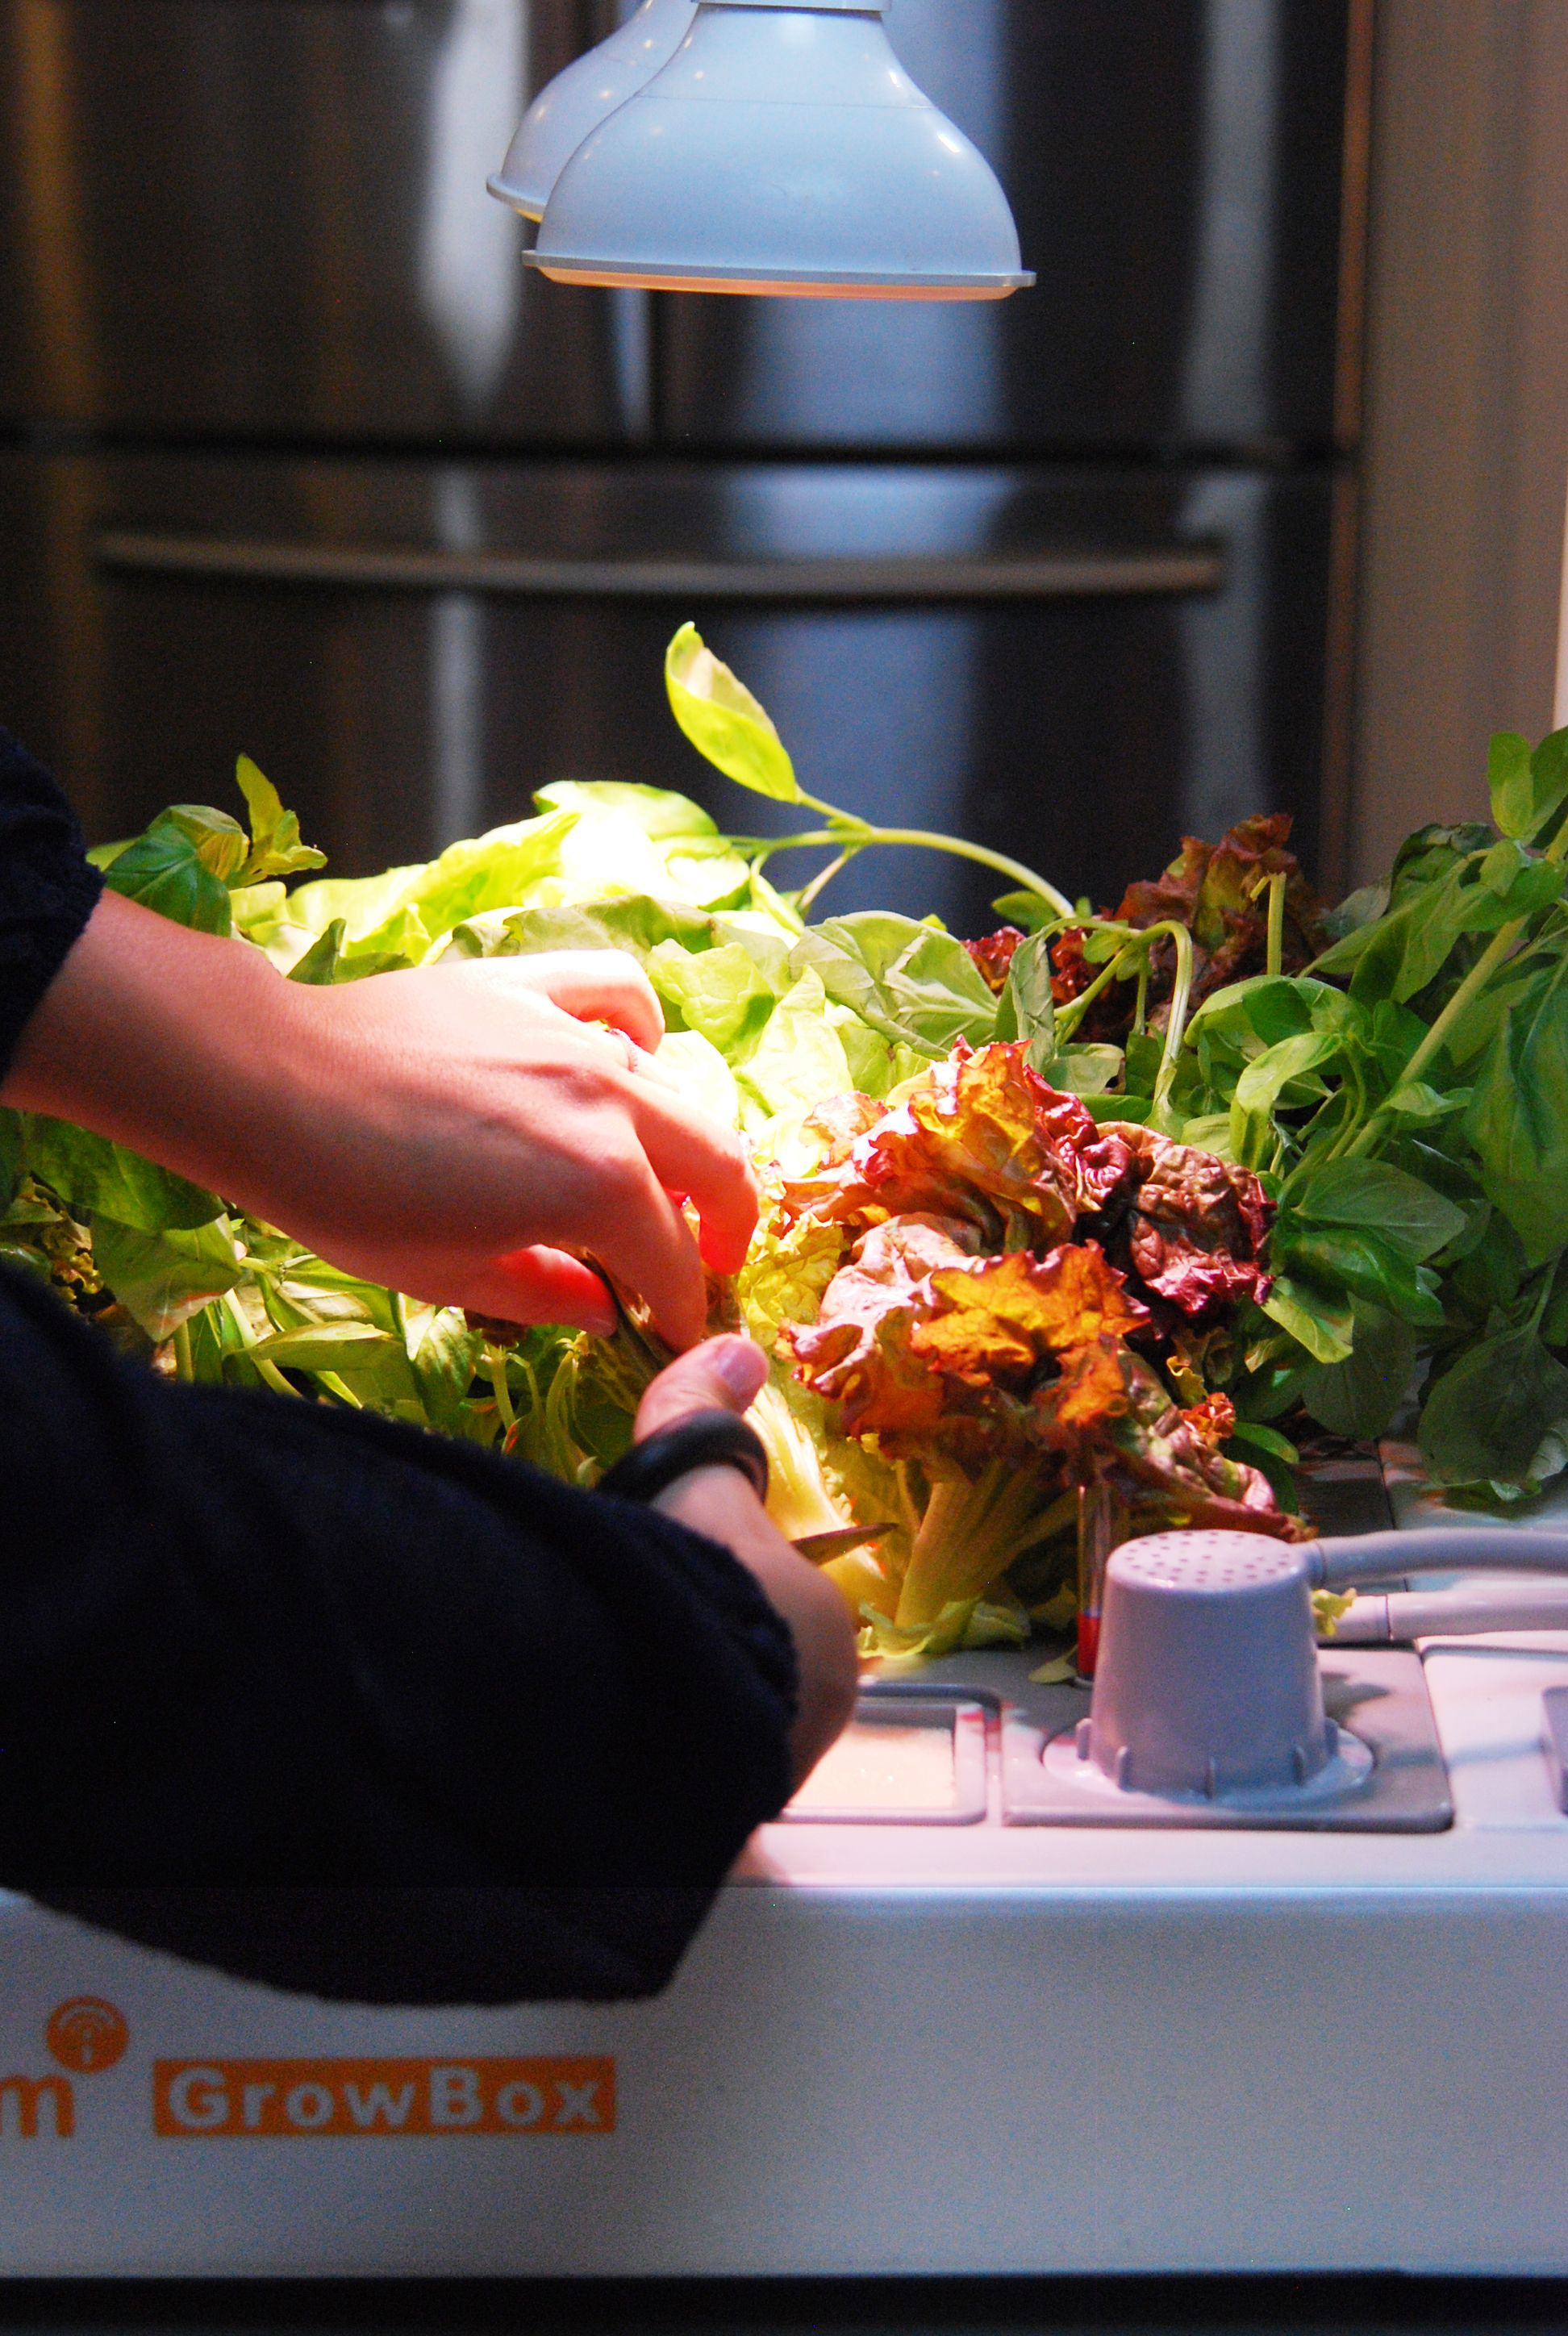 This Soil Free Tabletop Indoor Gardening System Allows 640 x 480